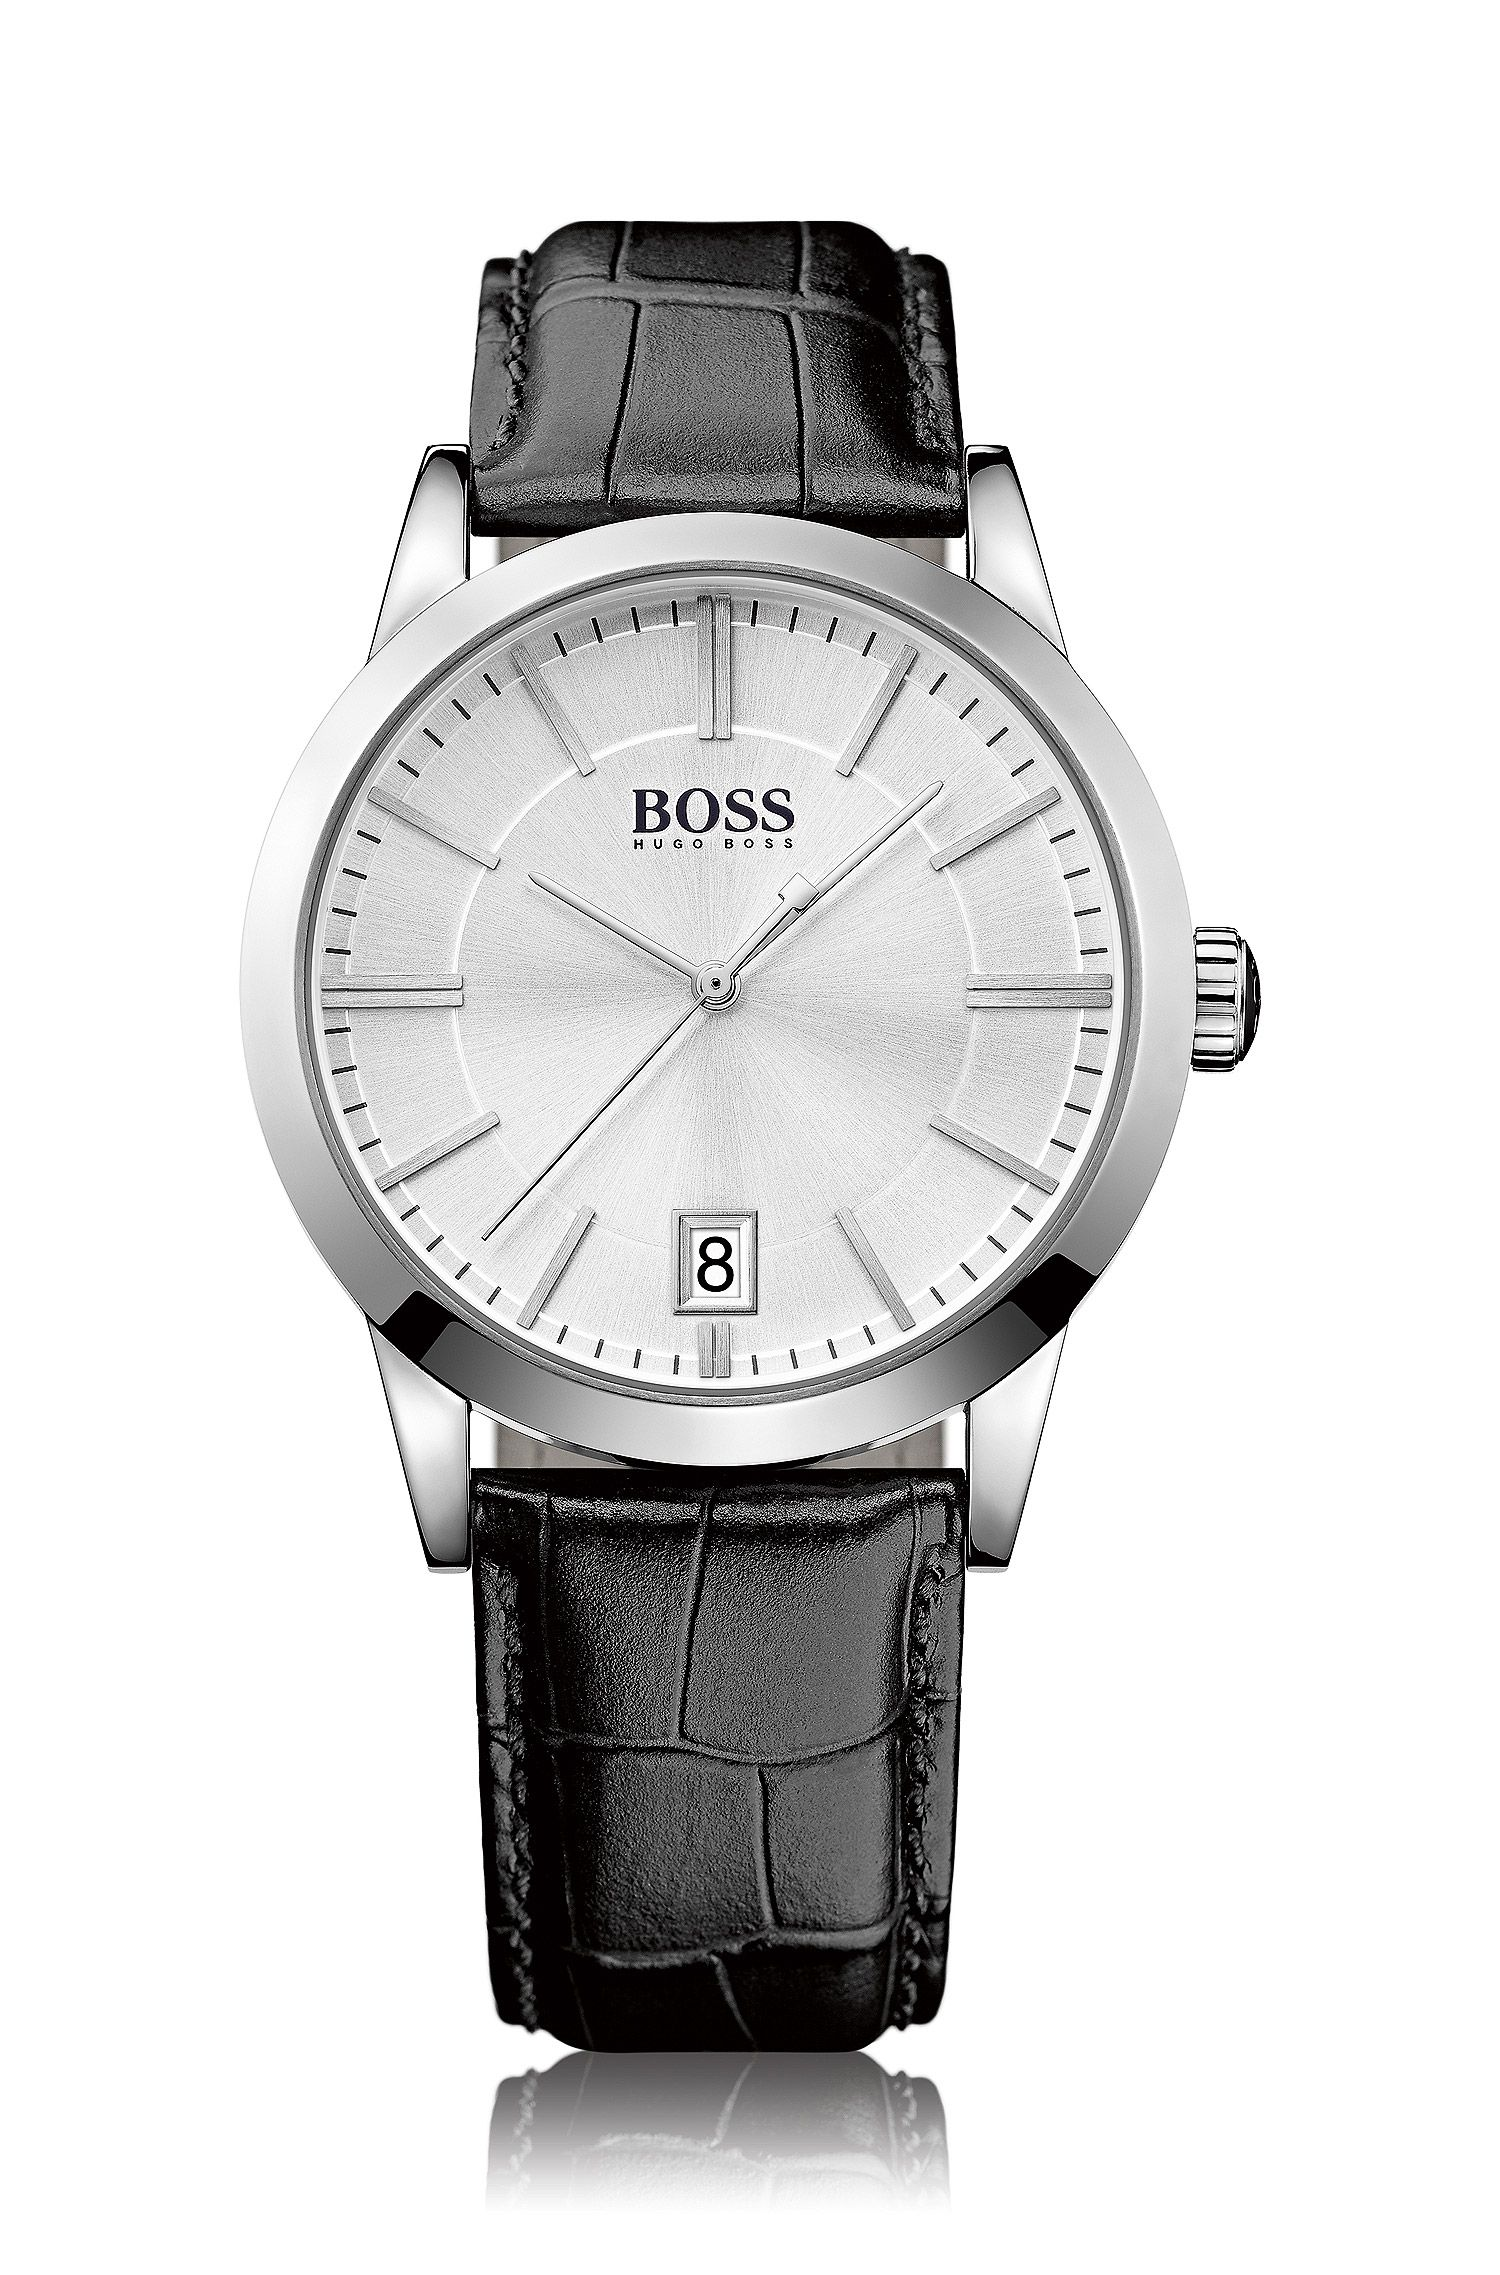 Polished stainless-steel three-hand watch with silver sunray dial and leather strap